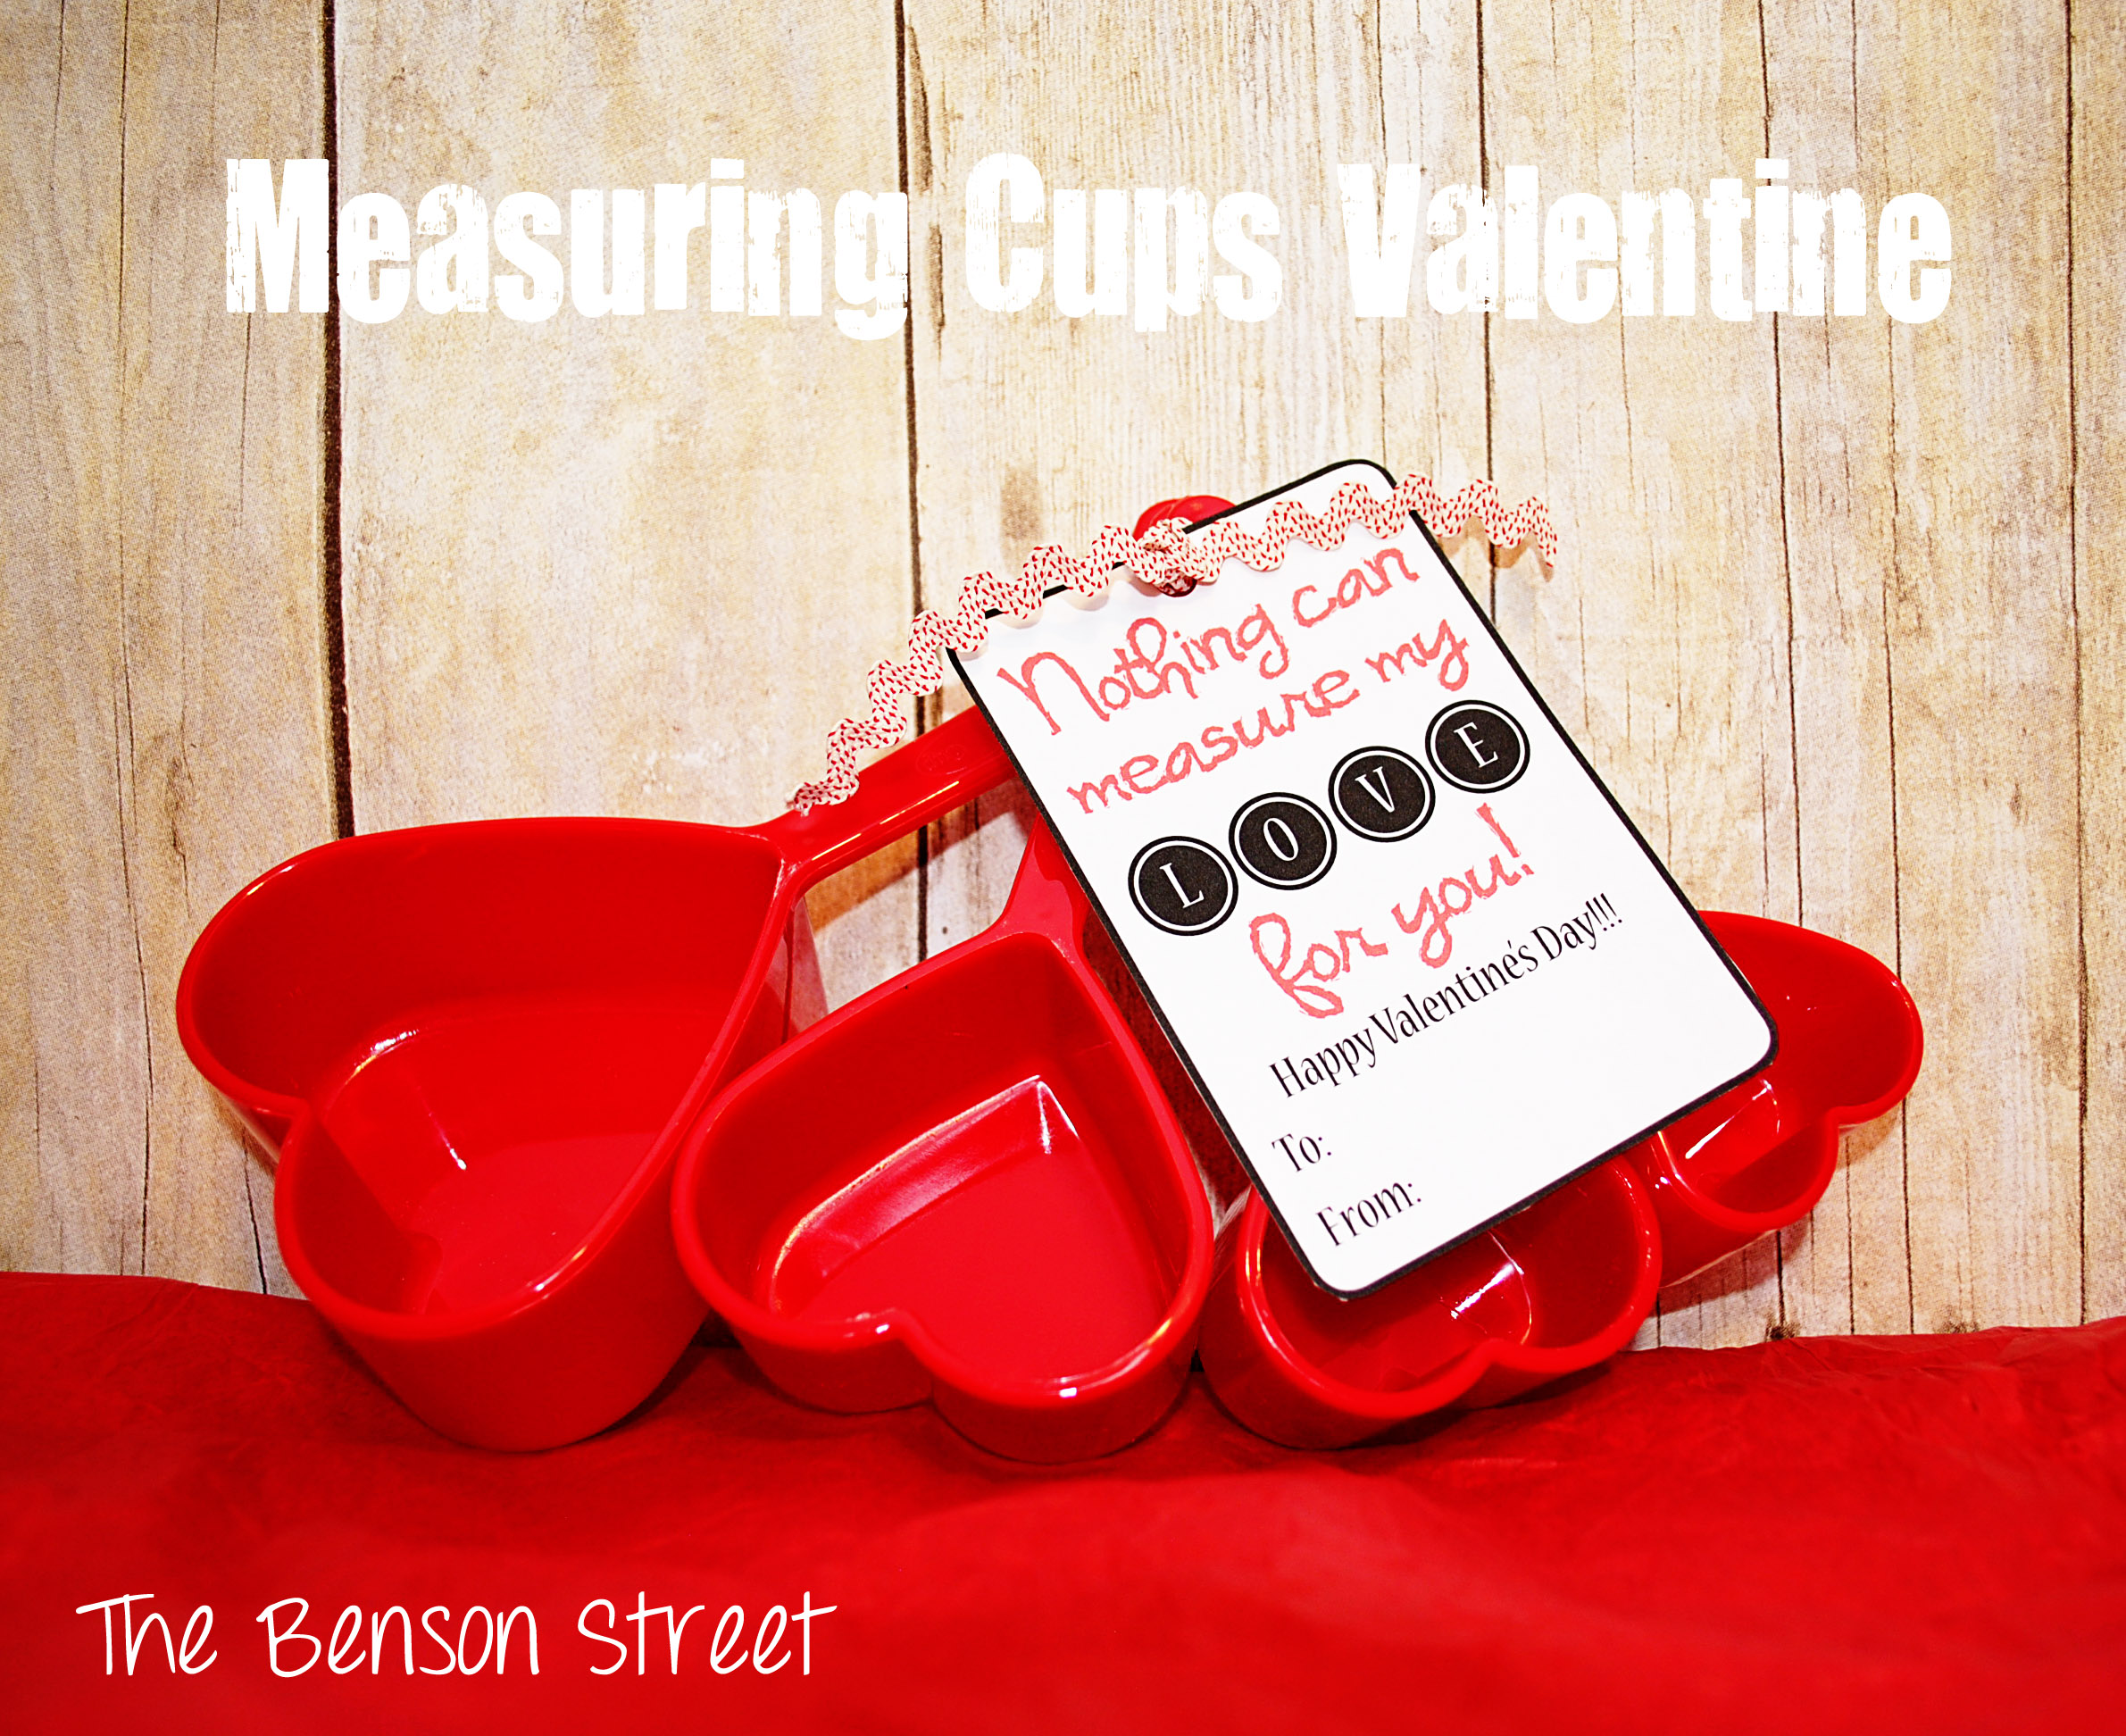 Measuring Cups Valentine at The Benson Street